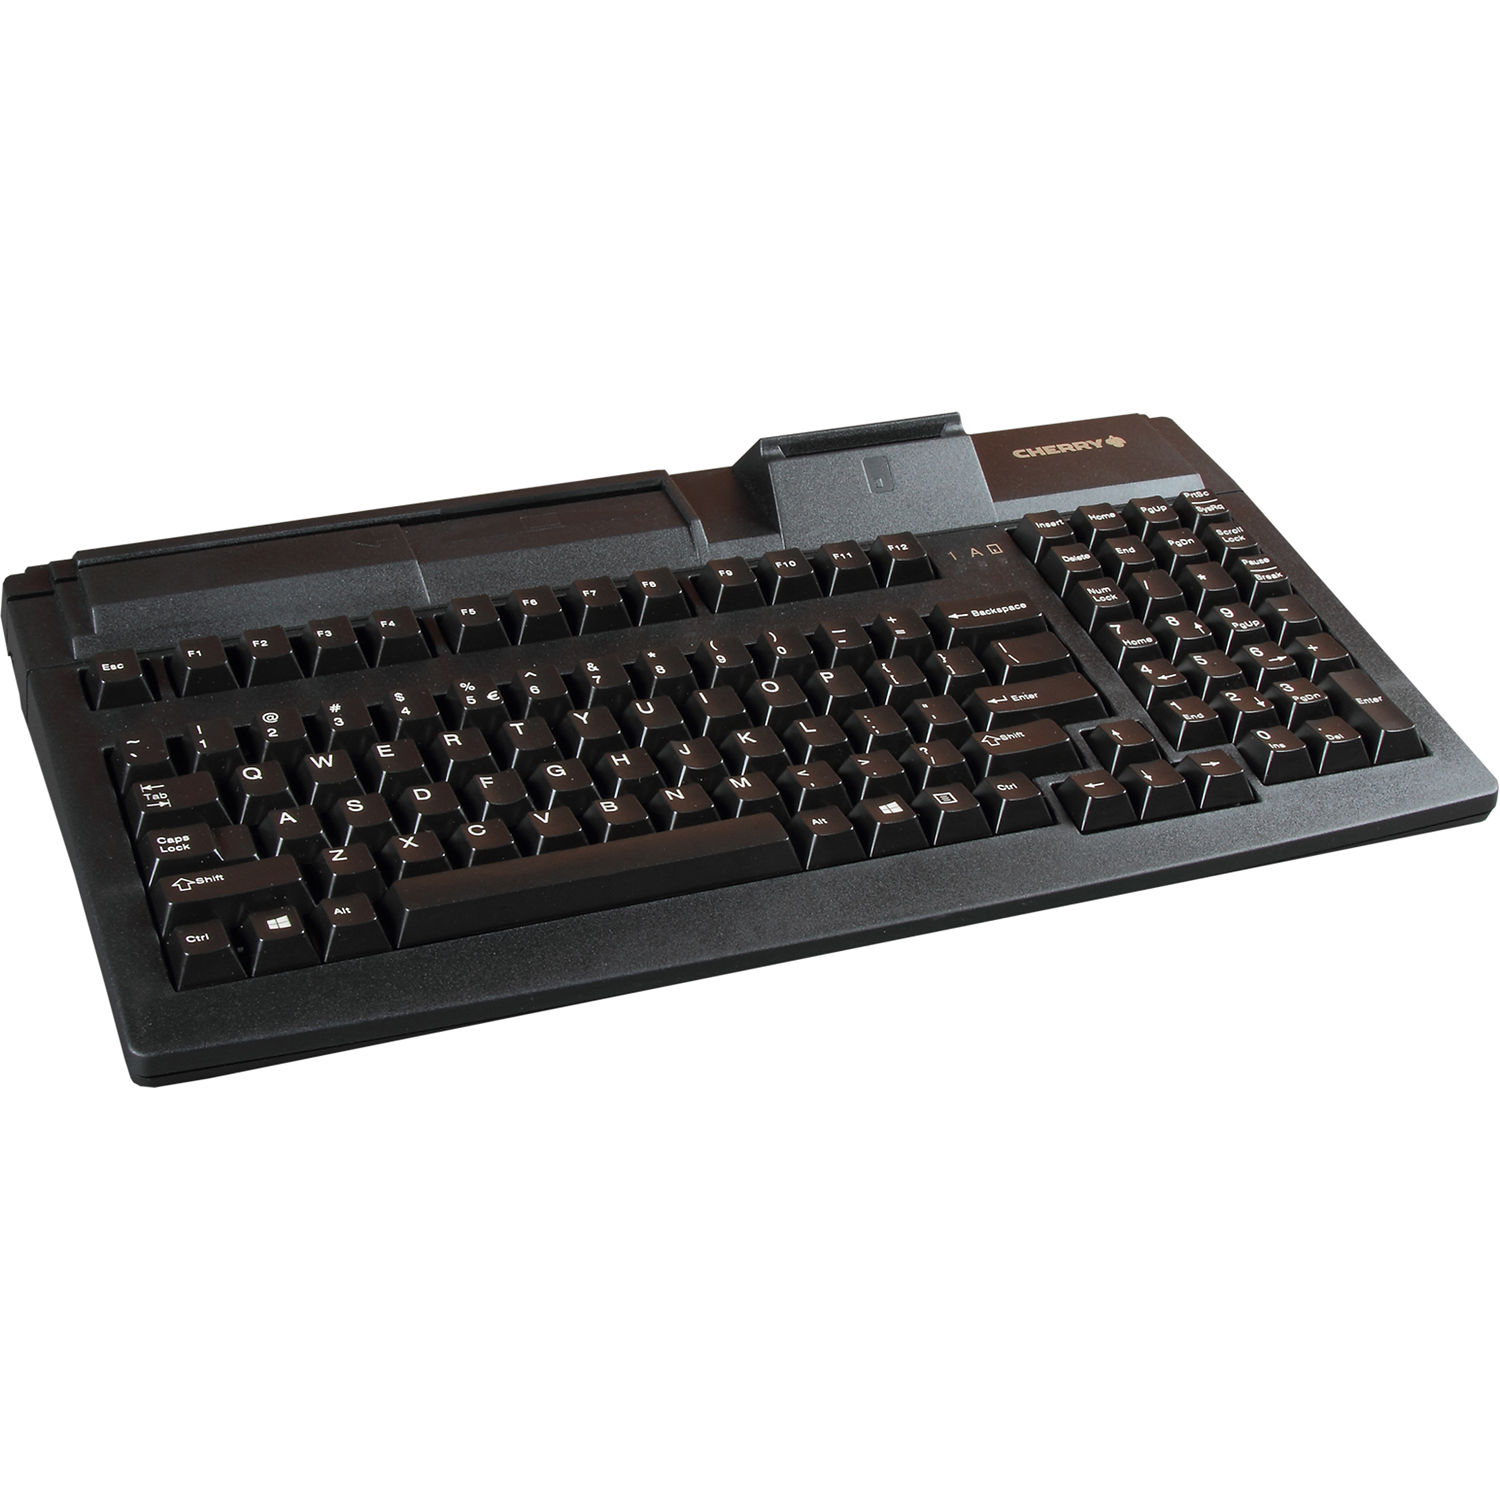 "Cherry 16"" USB keyboard with 3 Track Magnetic Stripe Reader"